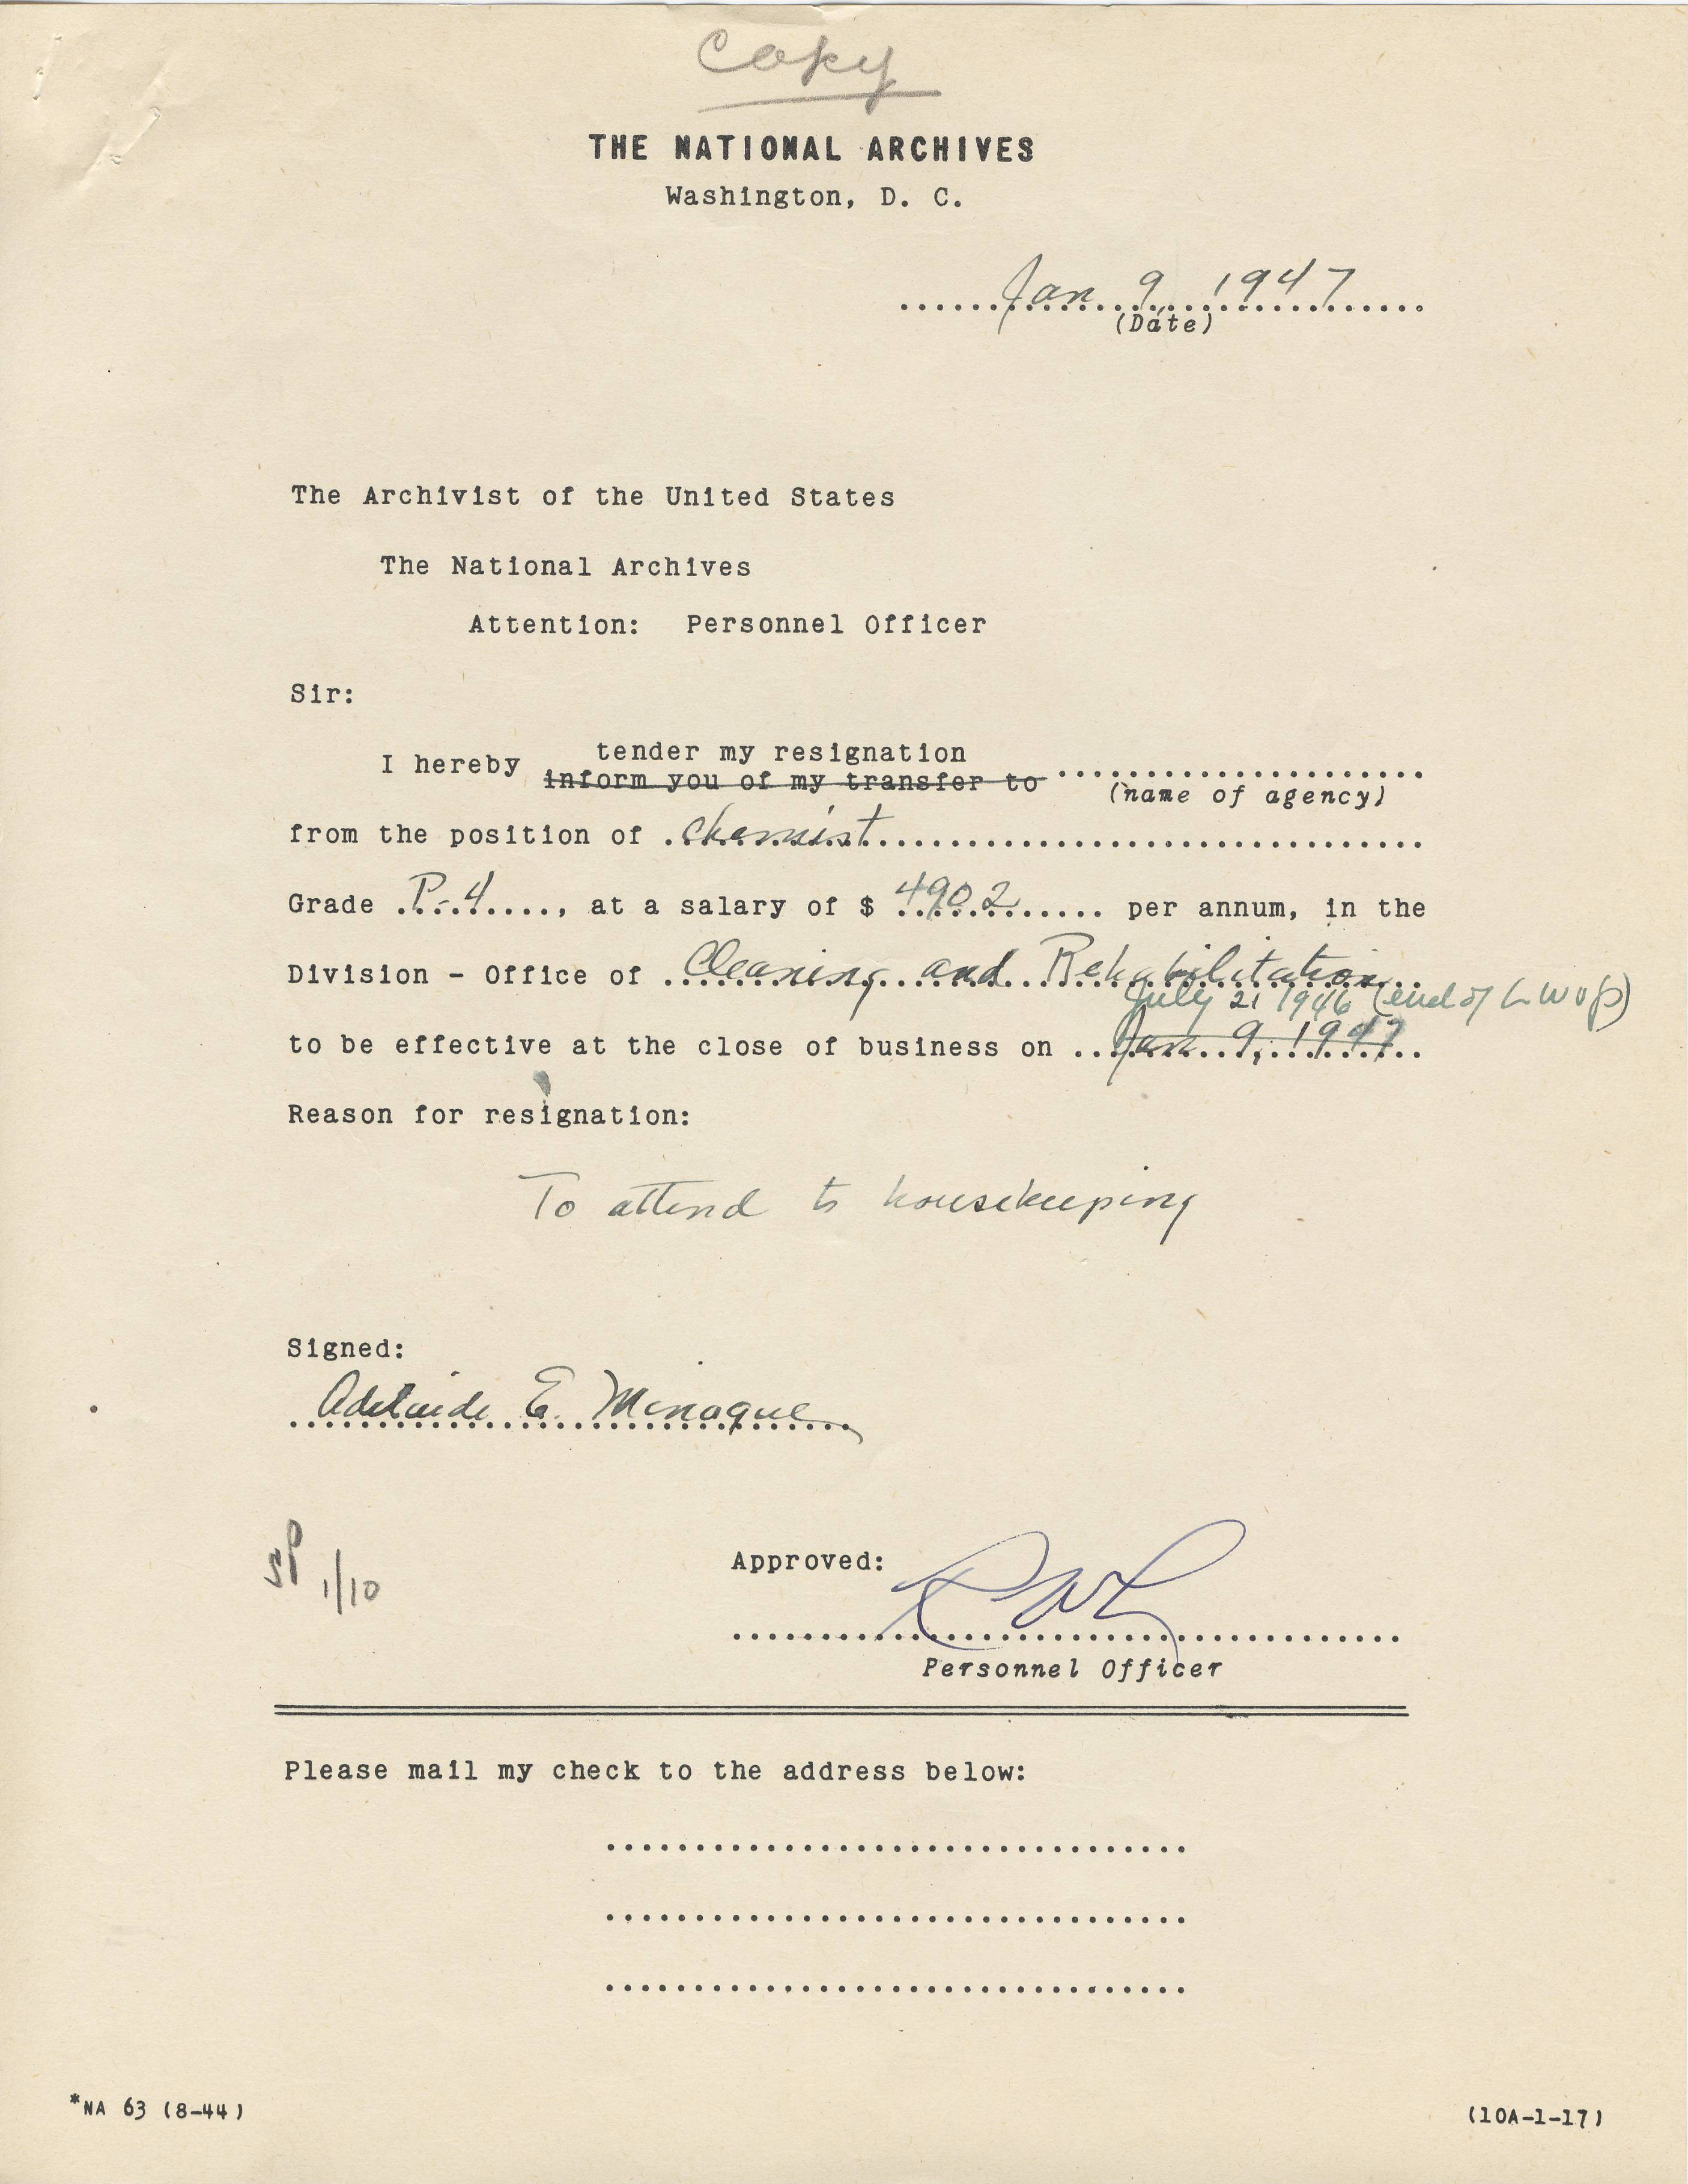 Adelaide Minogue Notice of Resignation, 1947 - RG 64, A1 1, file 75.29 file M, box 38